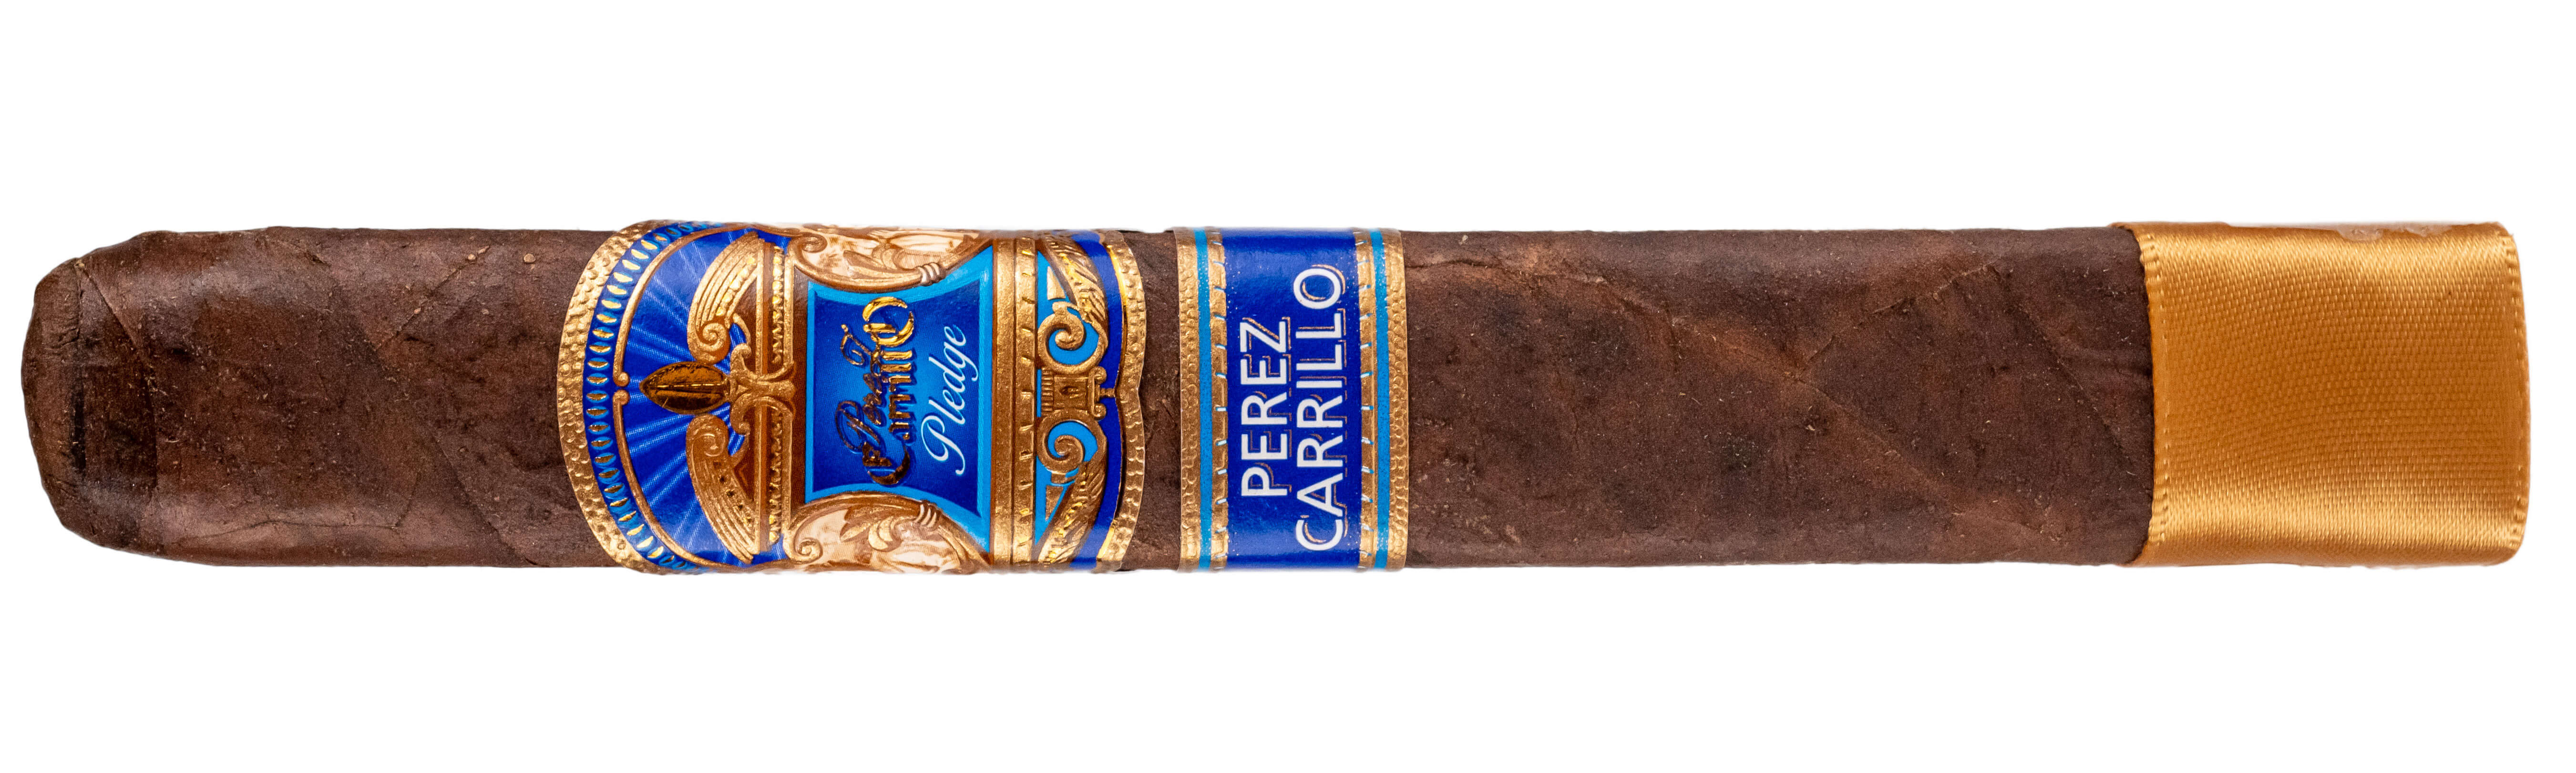 Blind Cigar Review: E.P. Carrillo | Pledge Sojourn